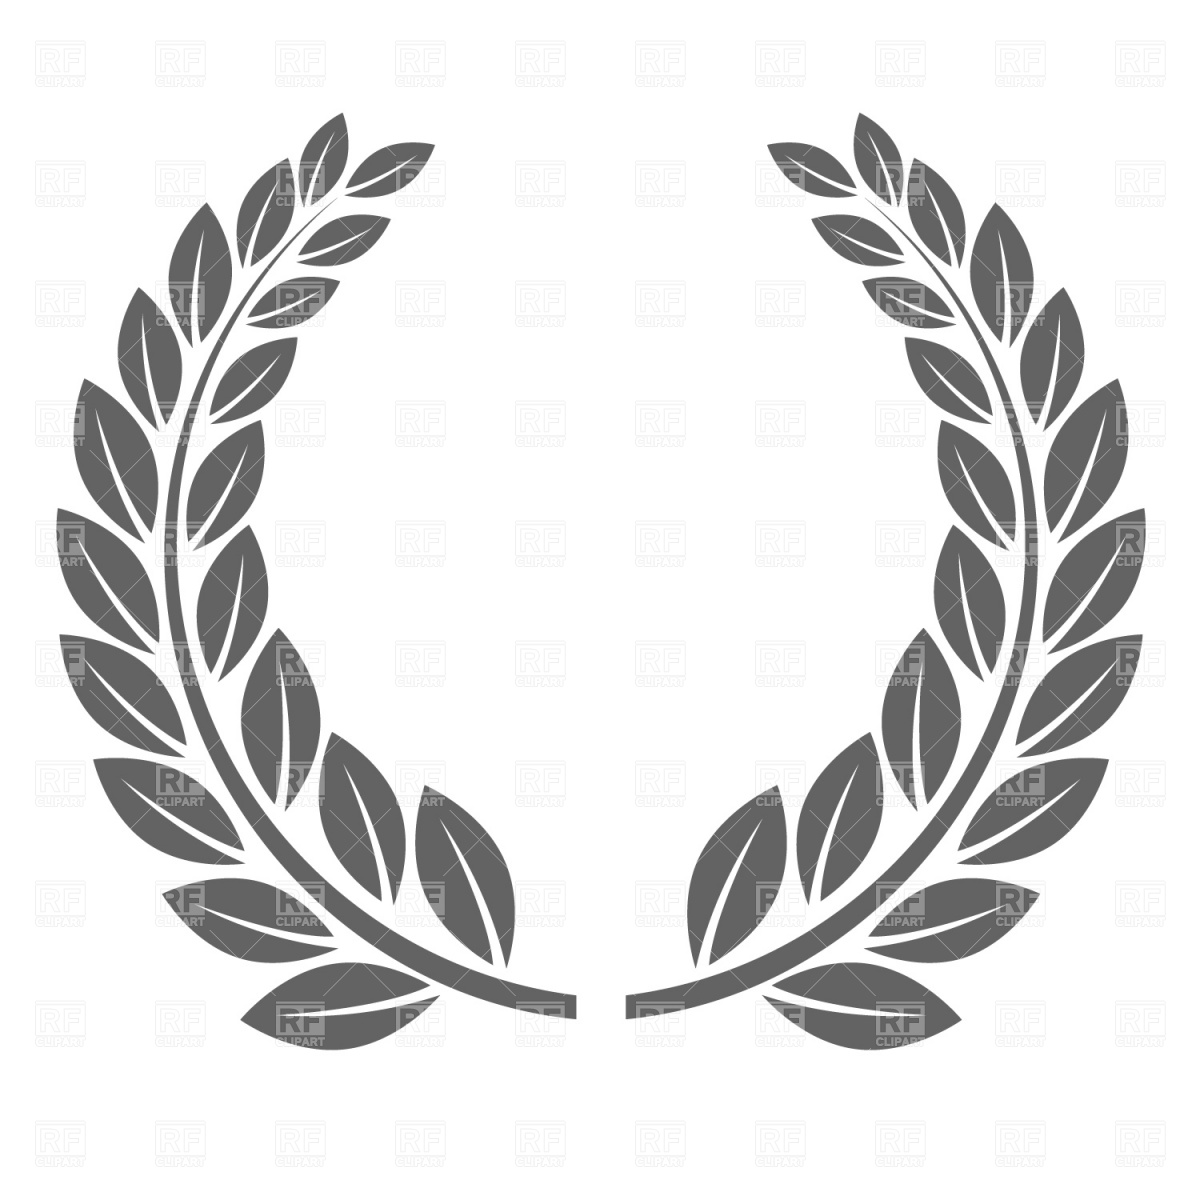 10 circle crest vector images vector laurel wreath clip for Laurel leaf crown template